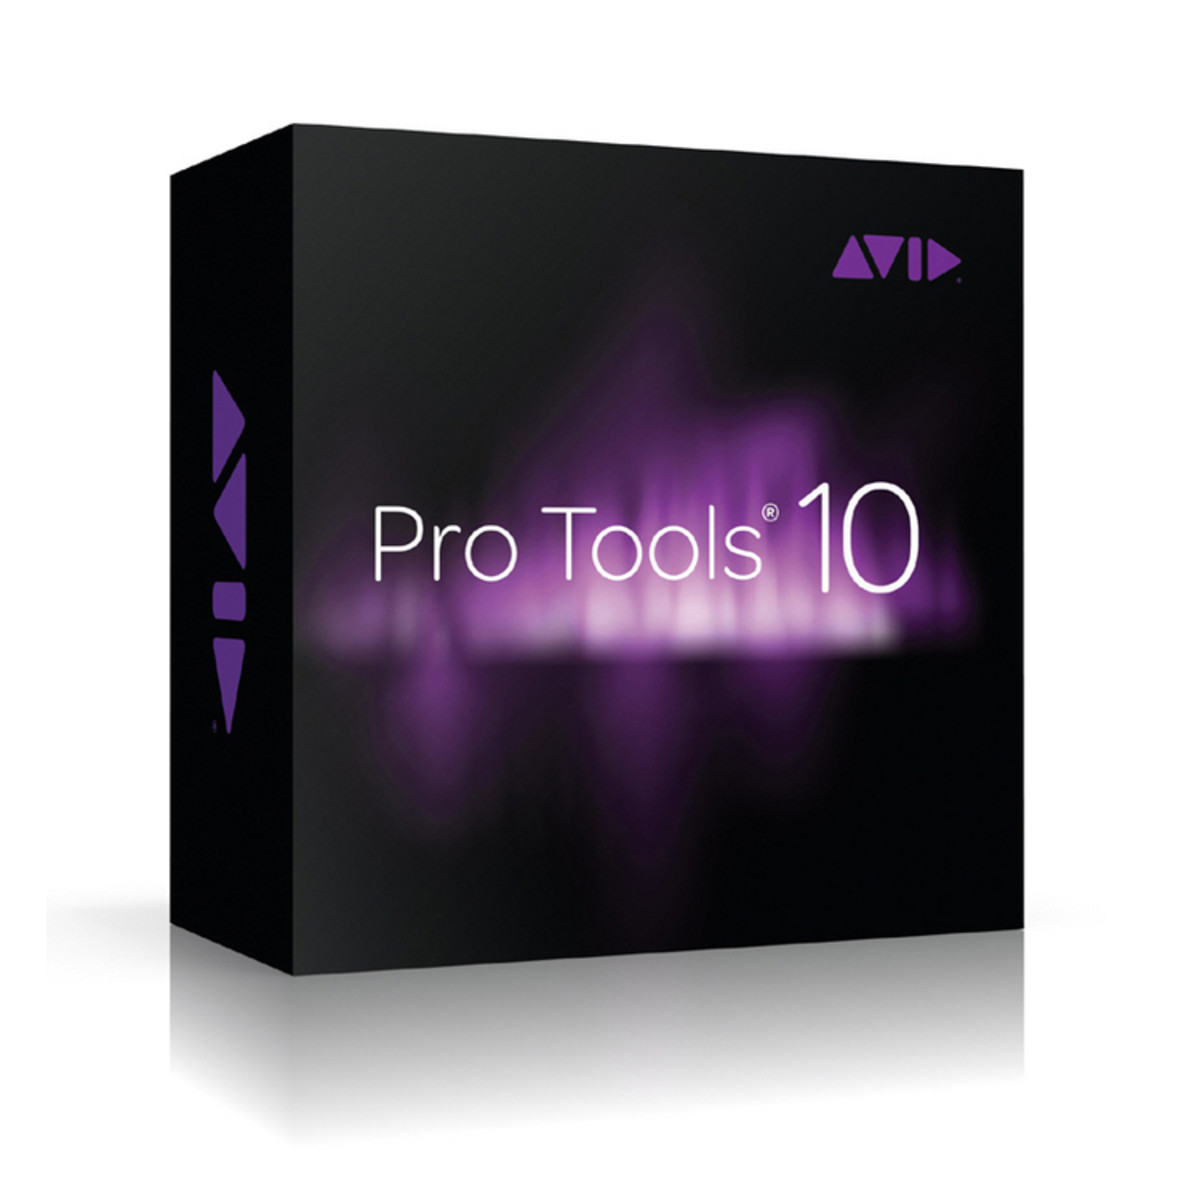 disc avid pro tools 10 software free upgrade to pro tools 11 at